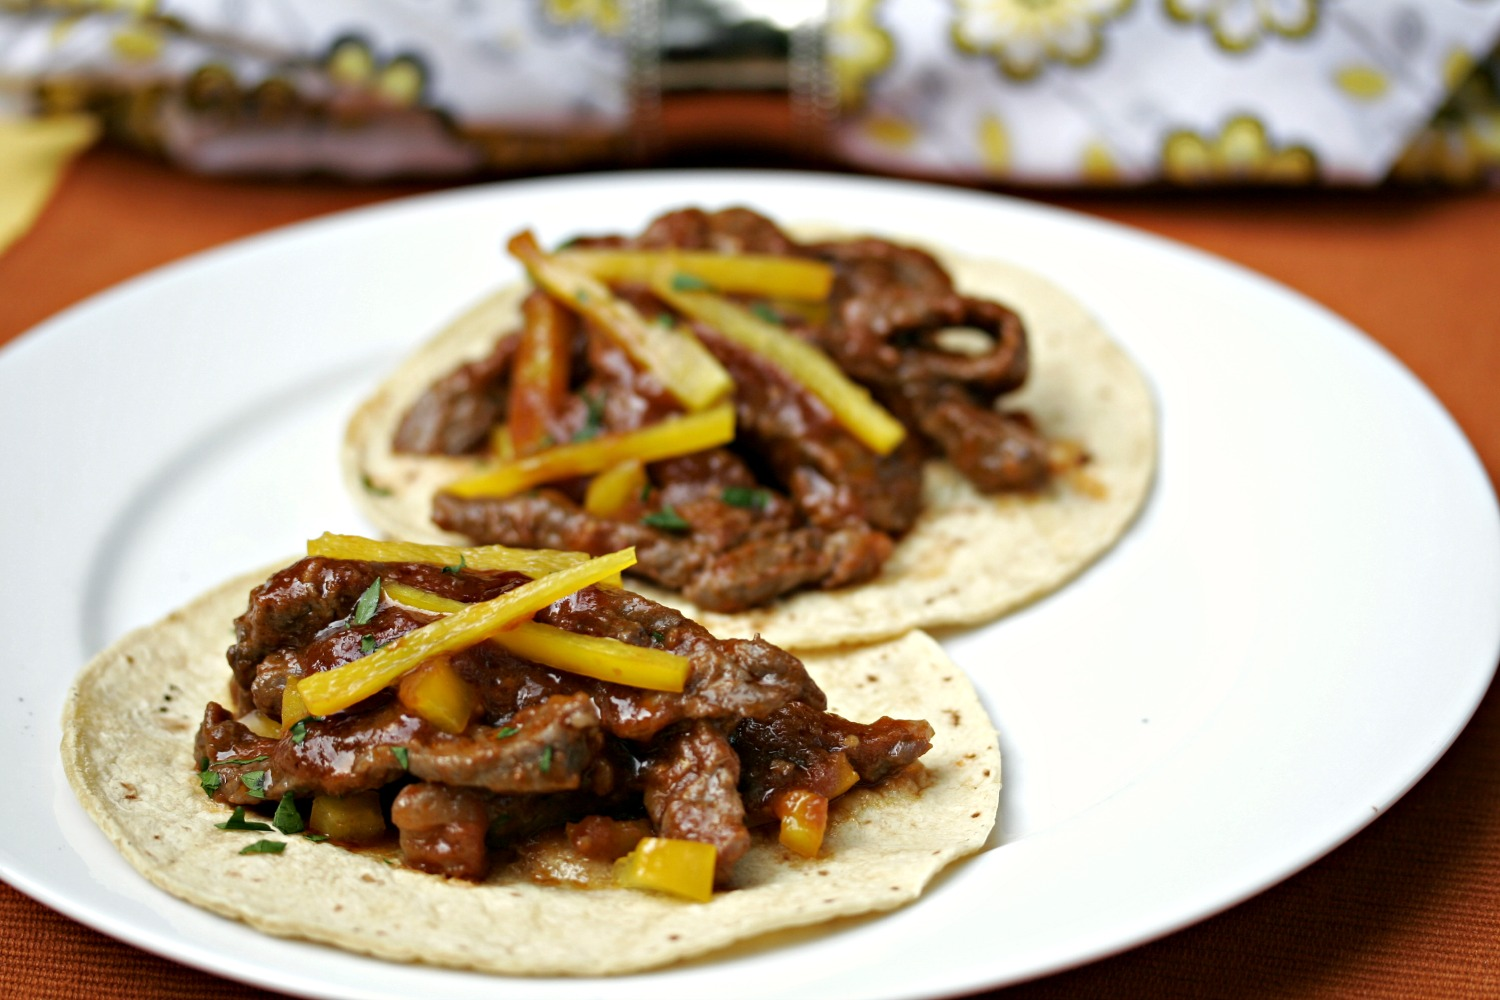 Mexican Beef stir fry tacos